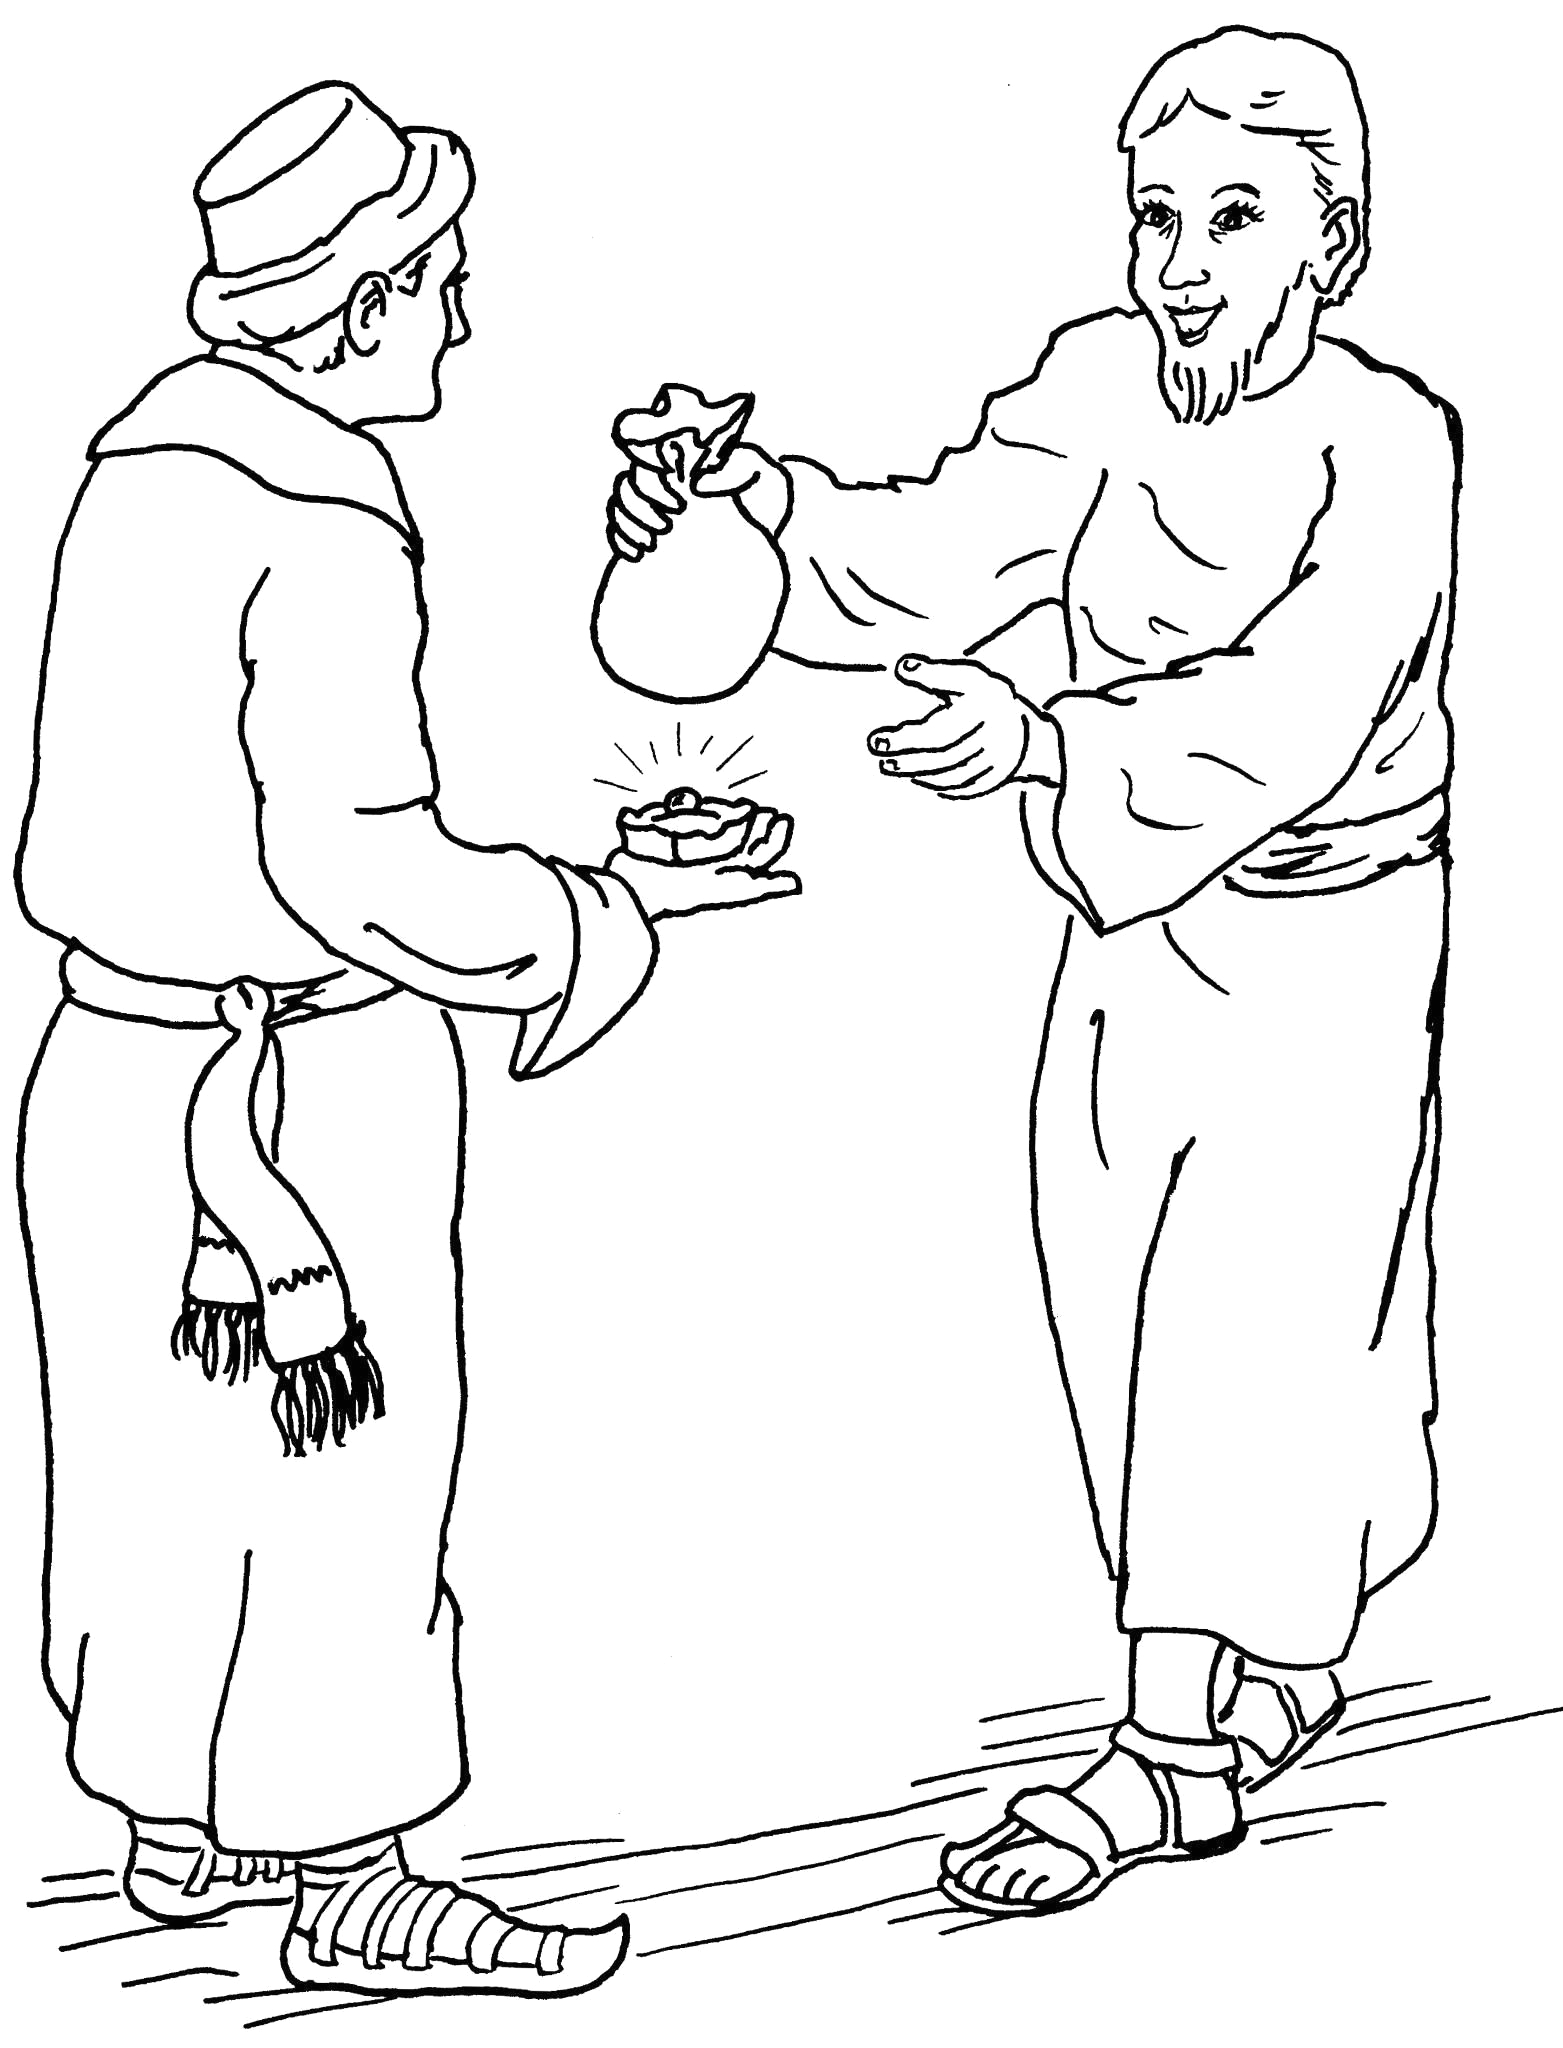 Parable Of the Hidden Treasure Coloring Page Parables the Pearl and Hidden Treasure Coloring Pages